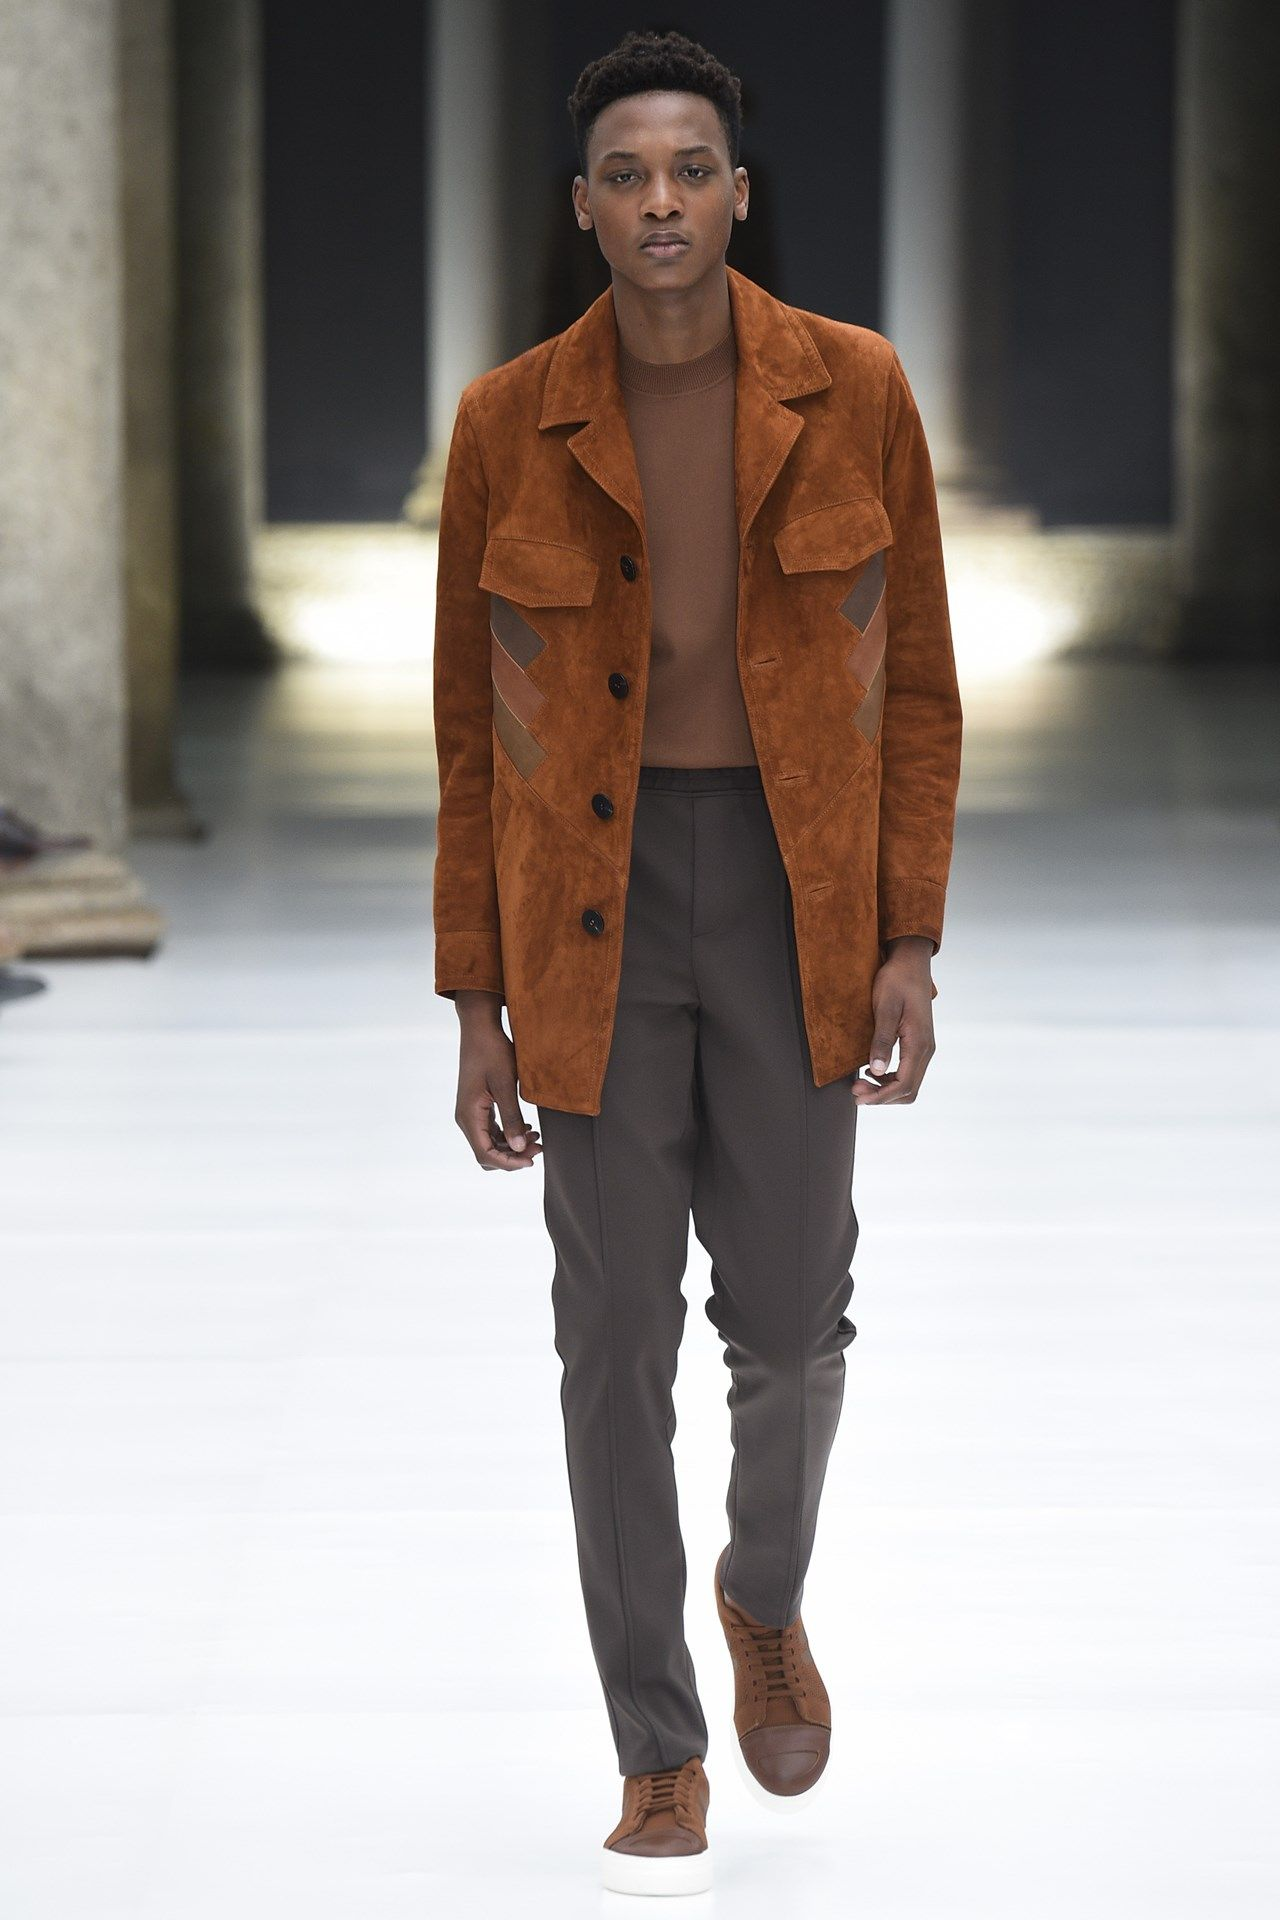 Catwalk photos and all the looks from Neil Barrett Spring/Summer 2017 Menswear Milan Fashion Week